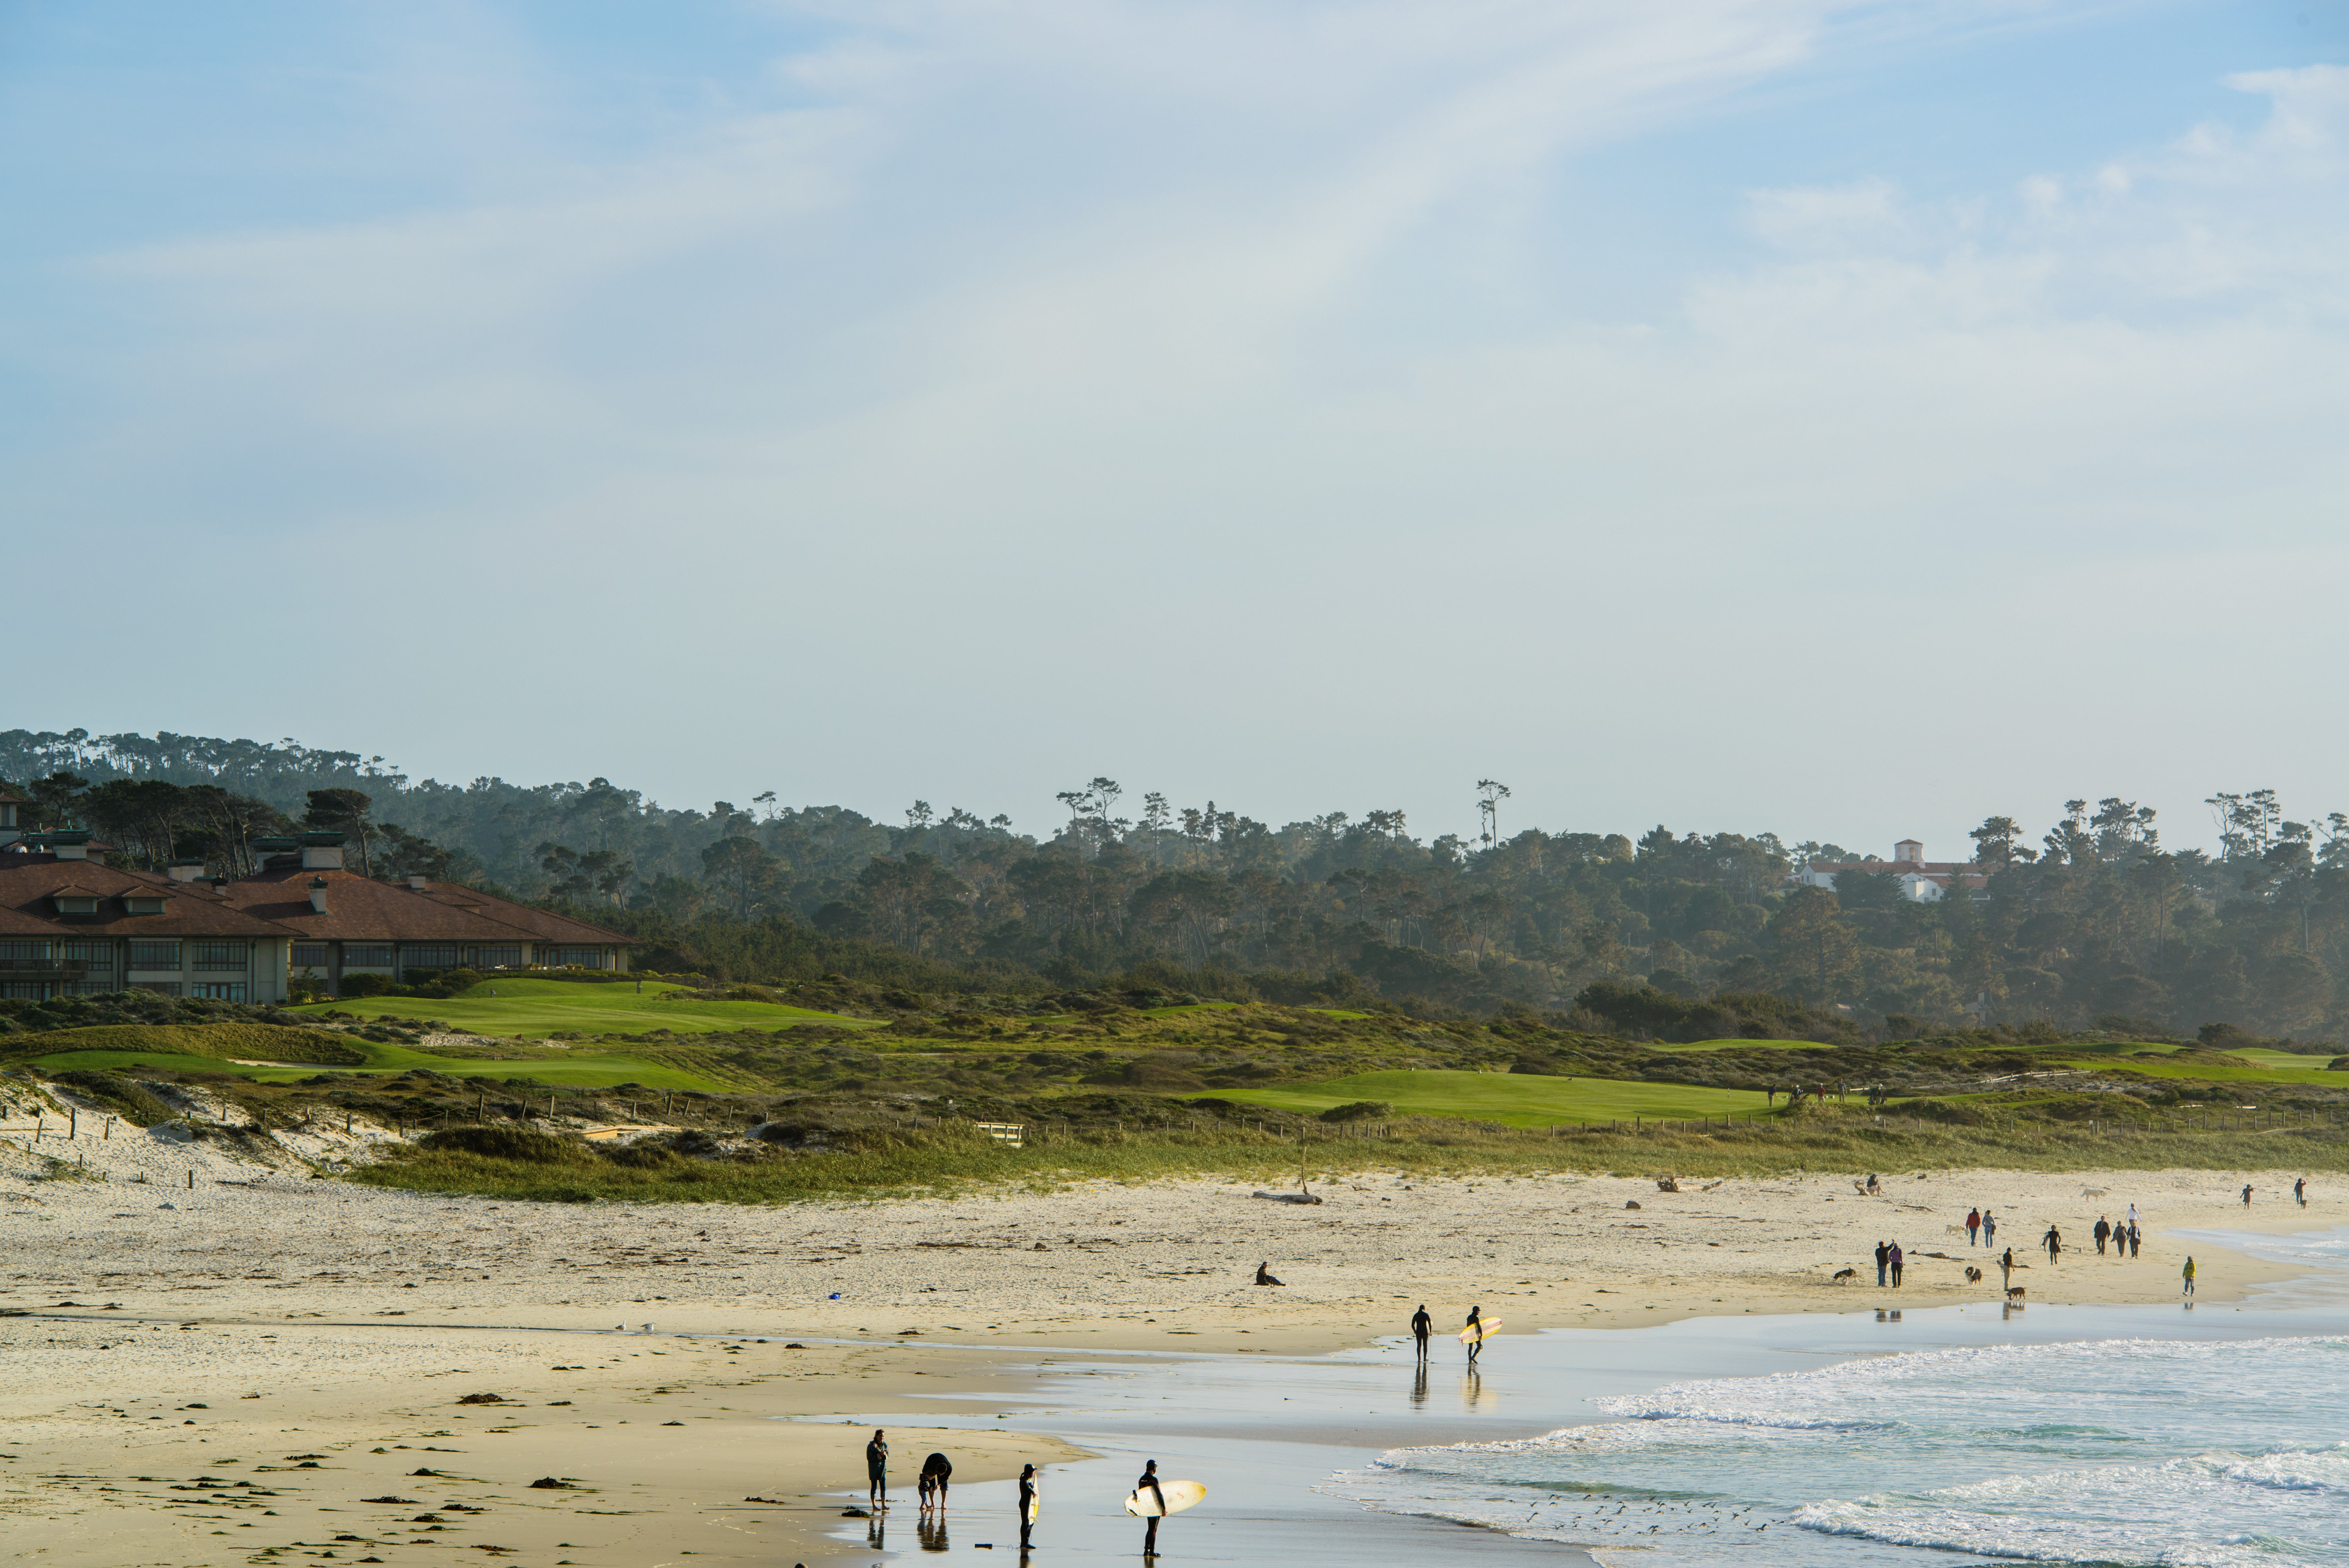 Take A Leisurely Boardwalk Stroll From Back Patio At The Inn Spanish Bay Or Park In Lot Behind 8th Tee Box Links